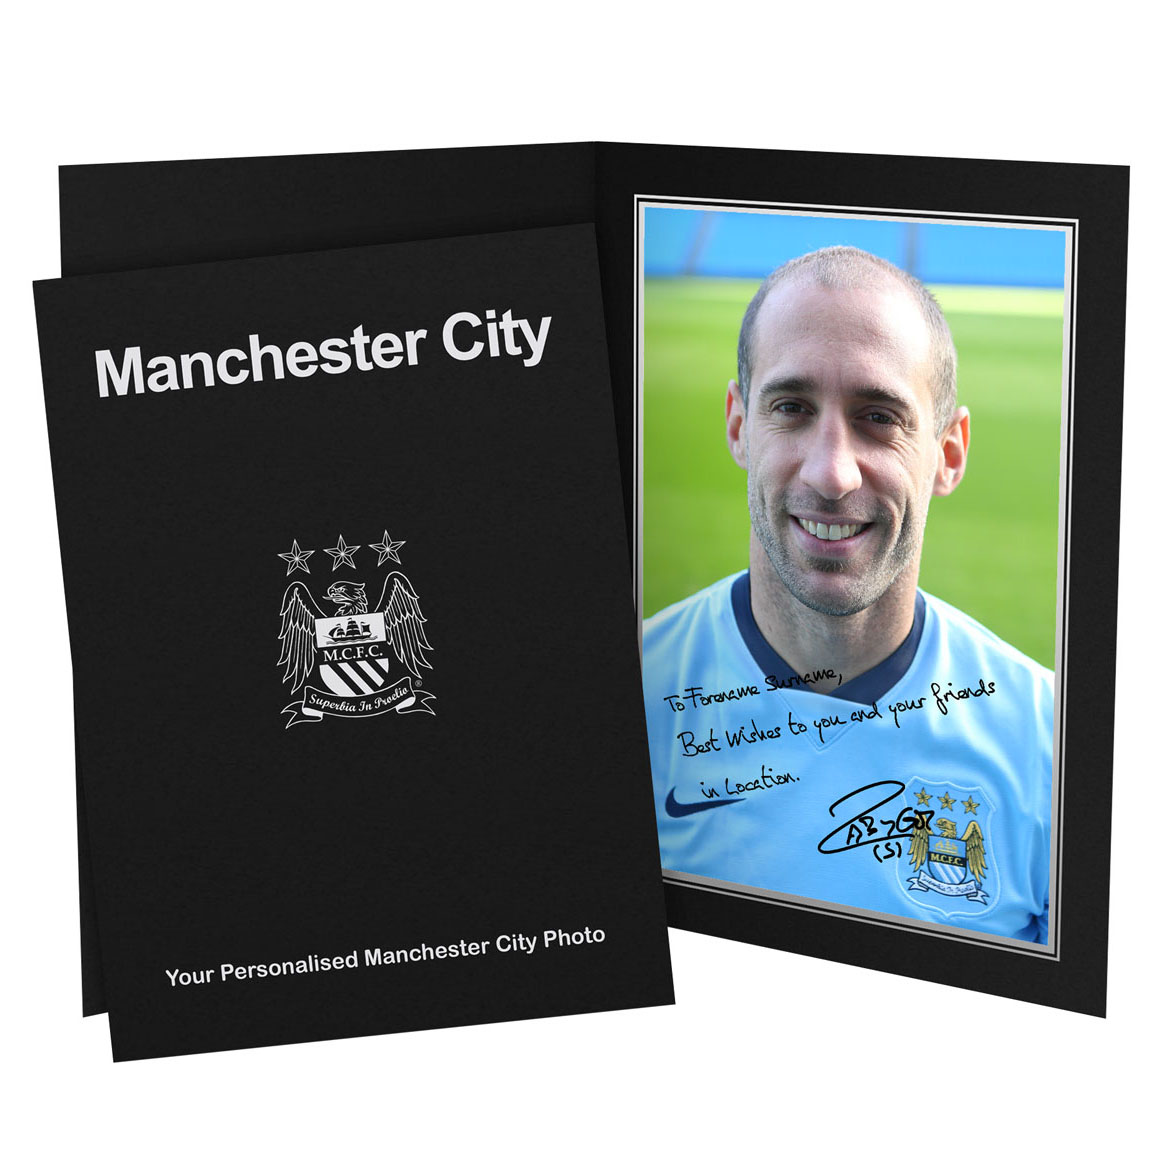 Manchester City Personalised Signature Photo in Presentation Folder - Zabaleta